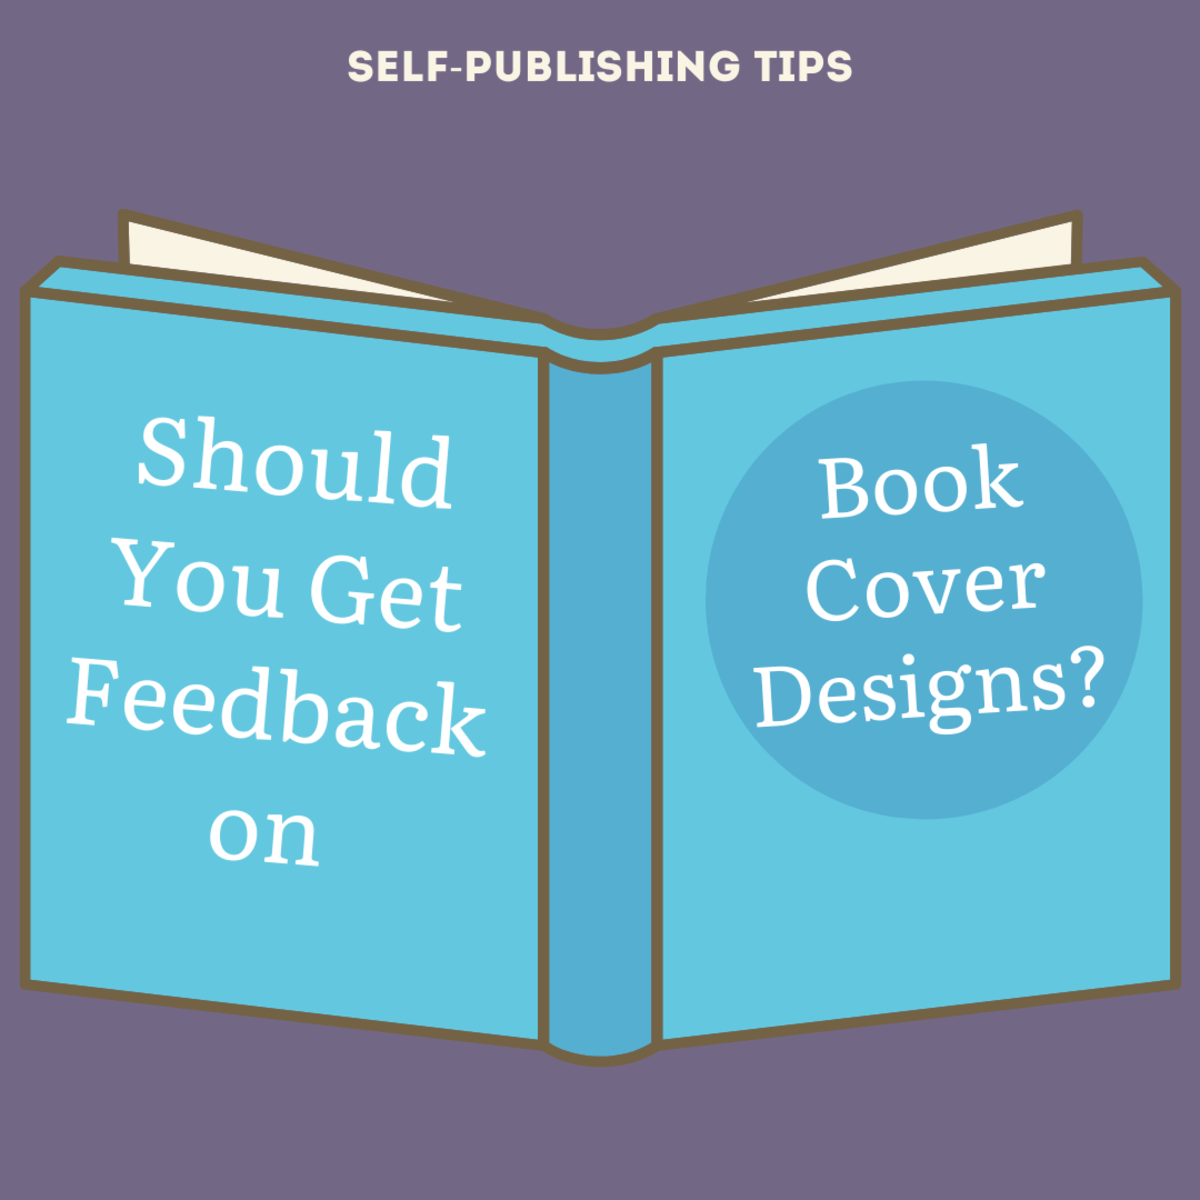 Book Cover Design Dilemma: How Much Feedback Is Too Much?